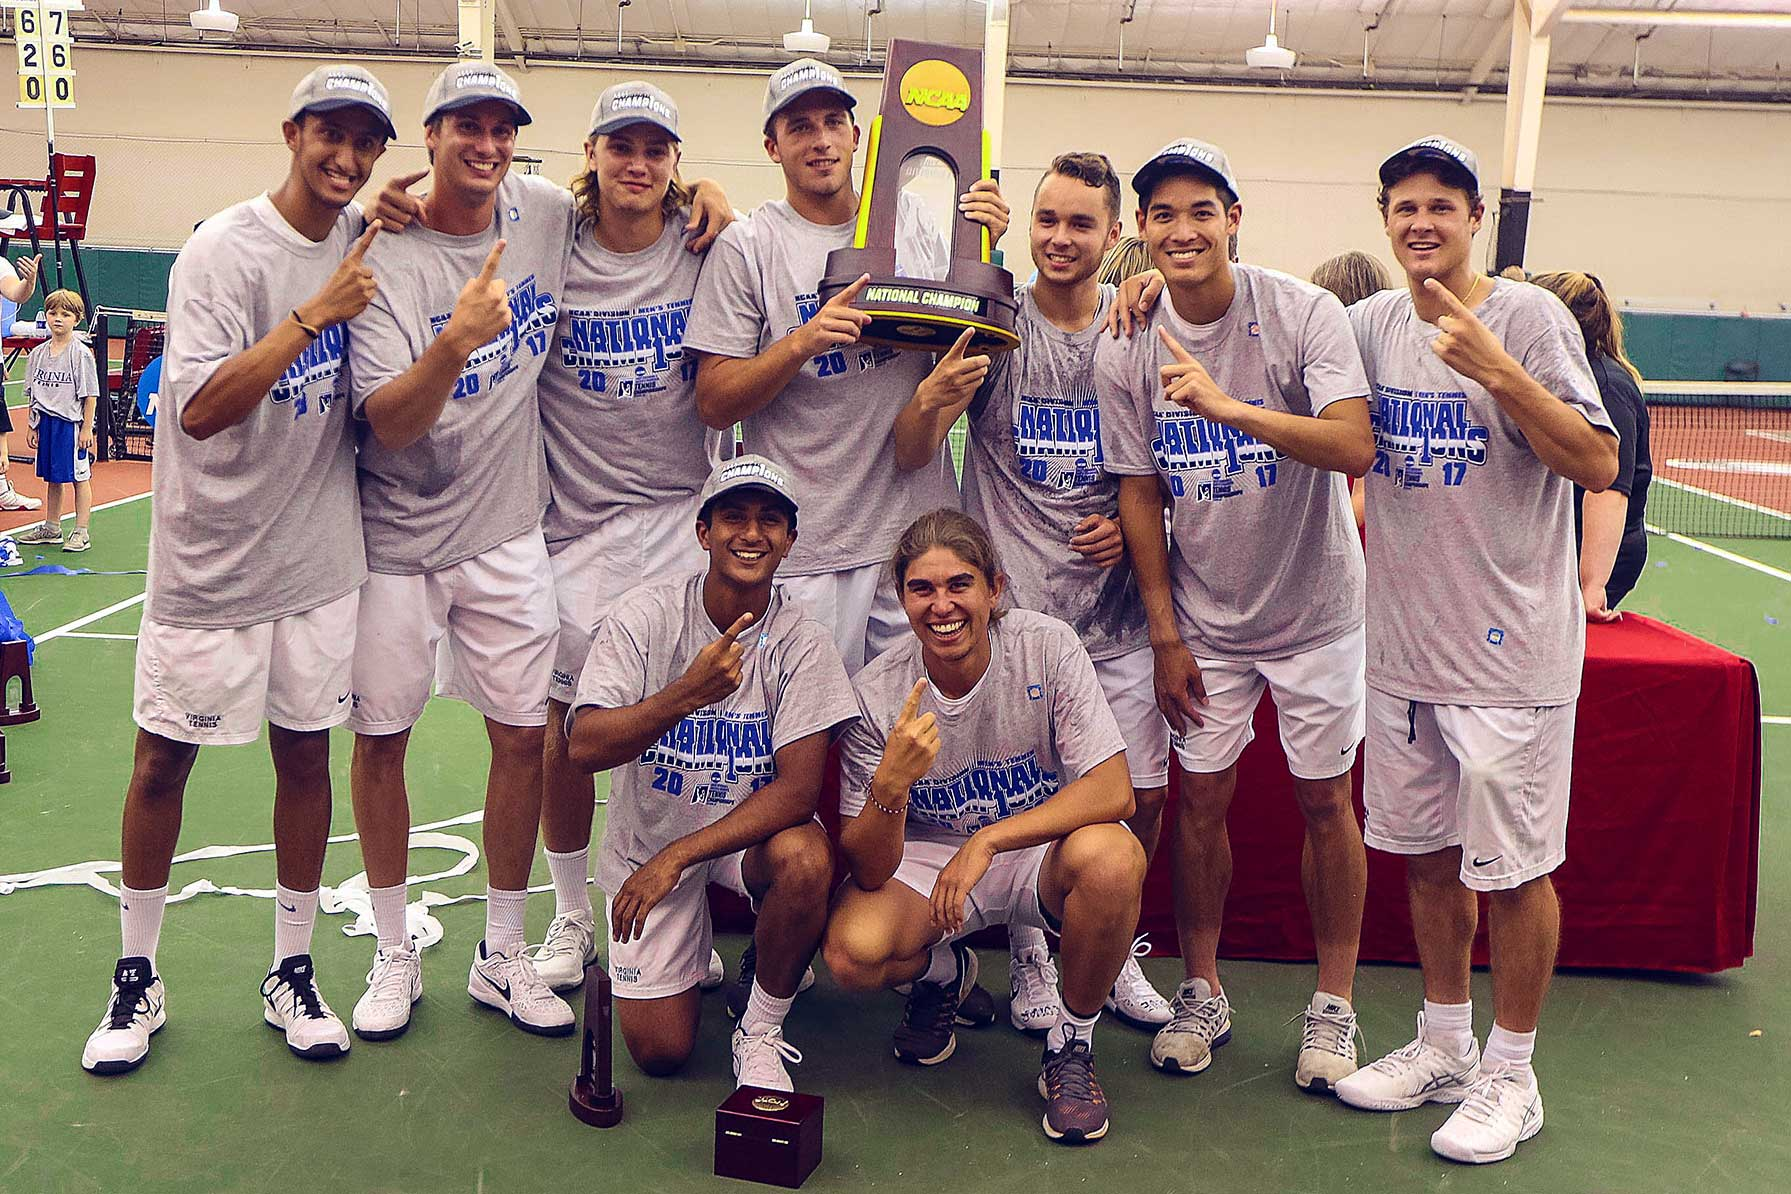 The Cavalier men's tennis team's third straight national title catapulted UVA to No. 19 in the all-sports rankings. (UVA Athletics photo)